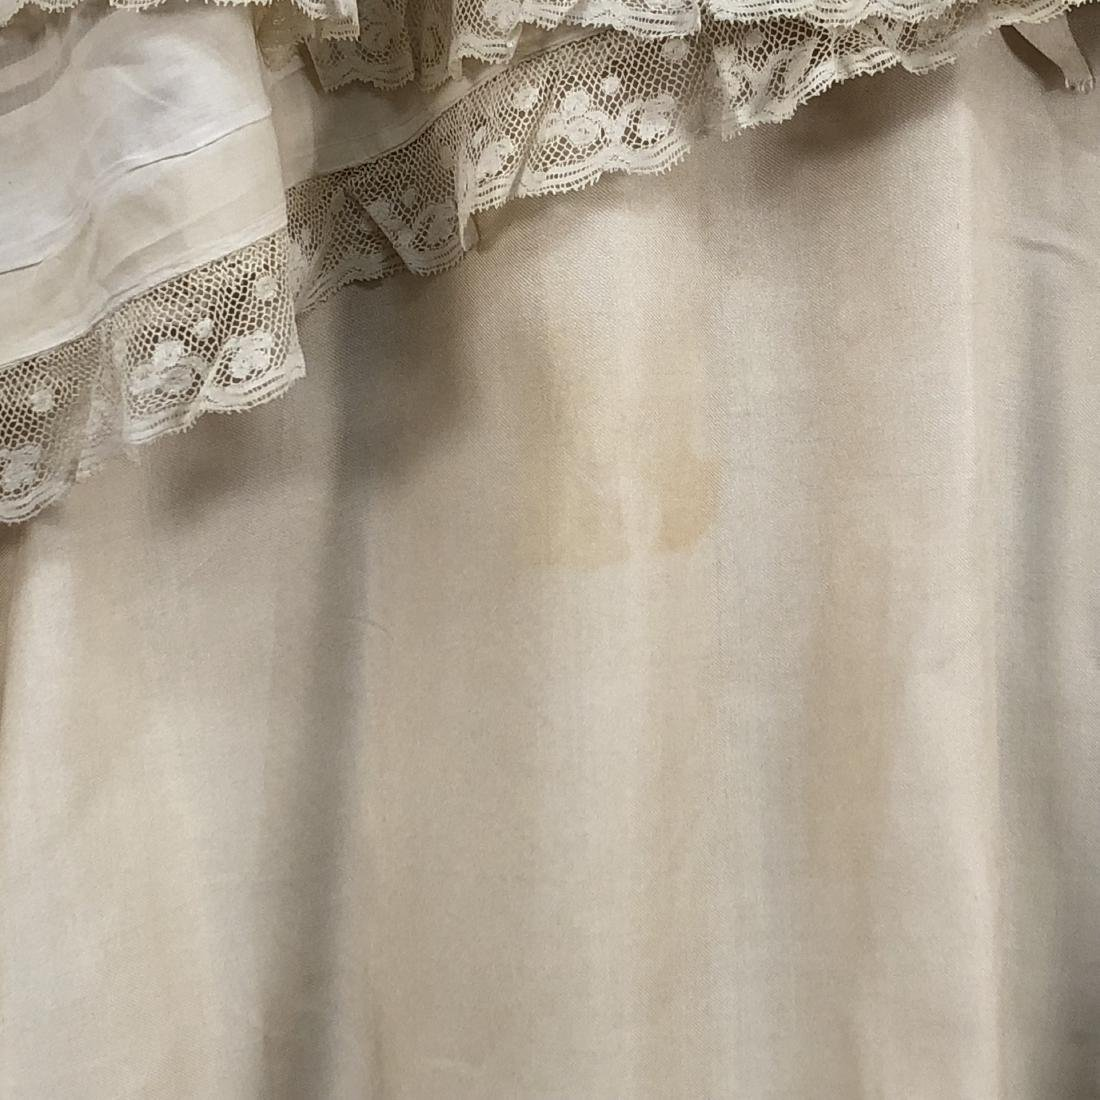 THREE PETTICOATS, QUEEN VICTORIA, 1880s - 1890s - 2